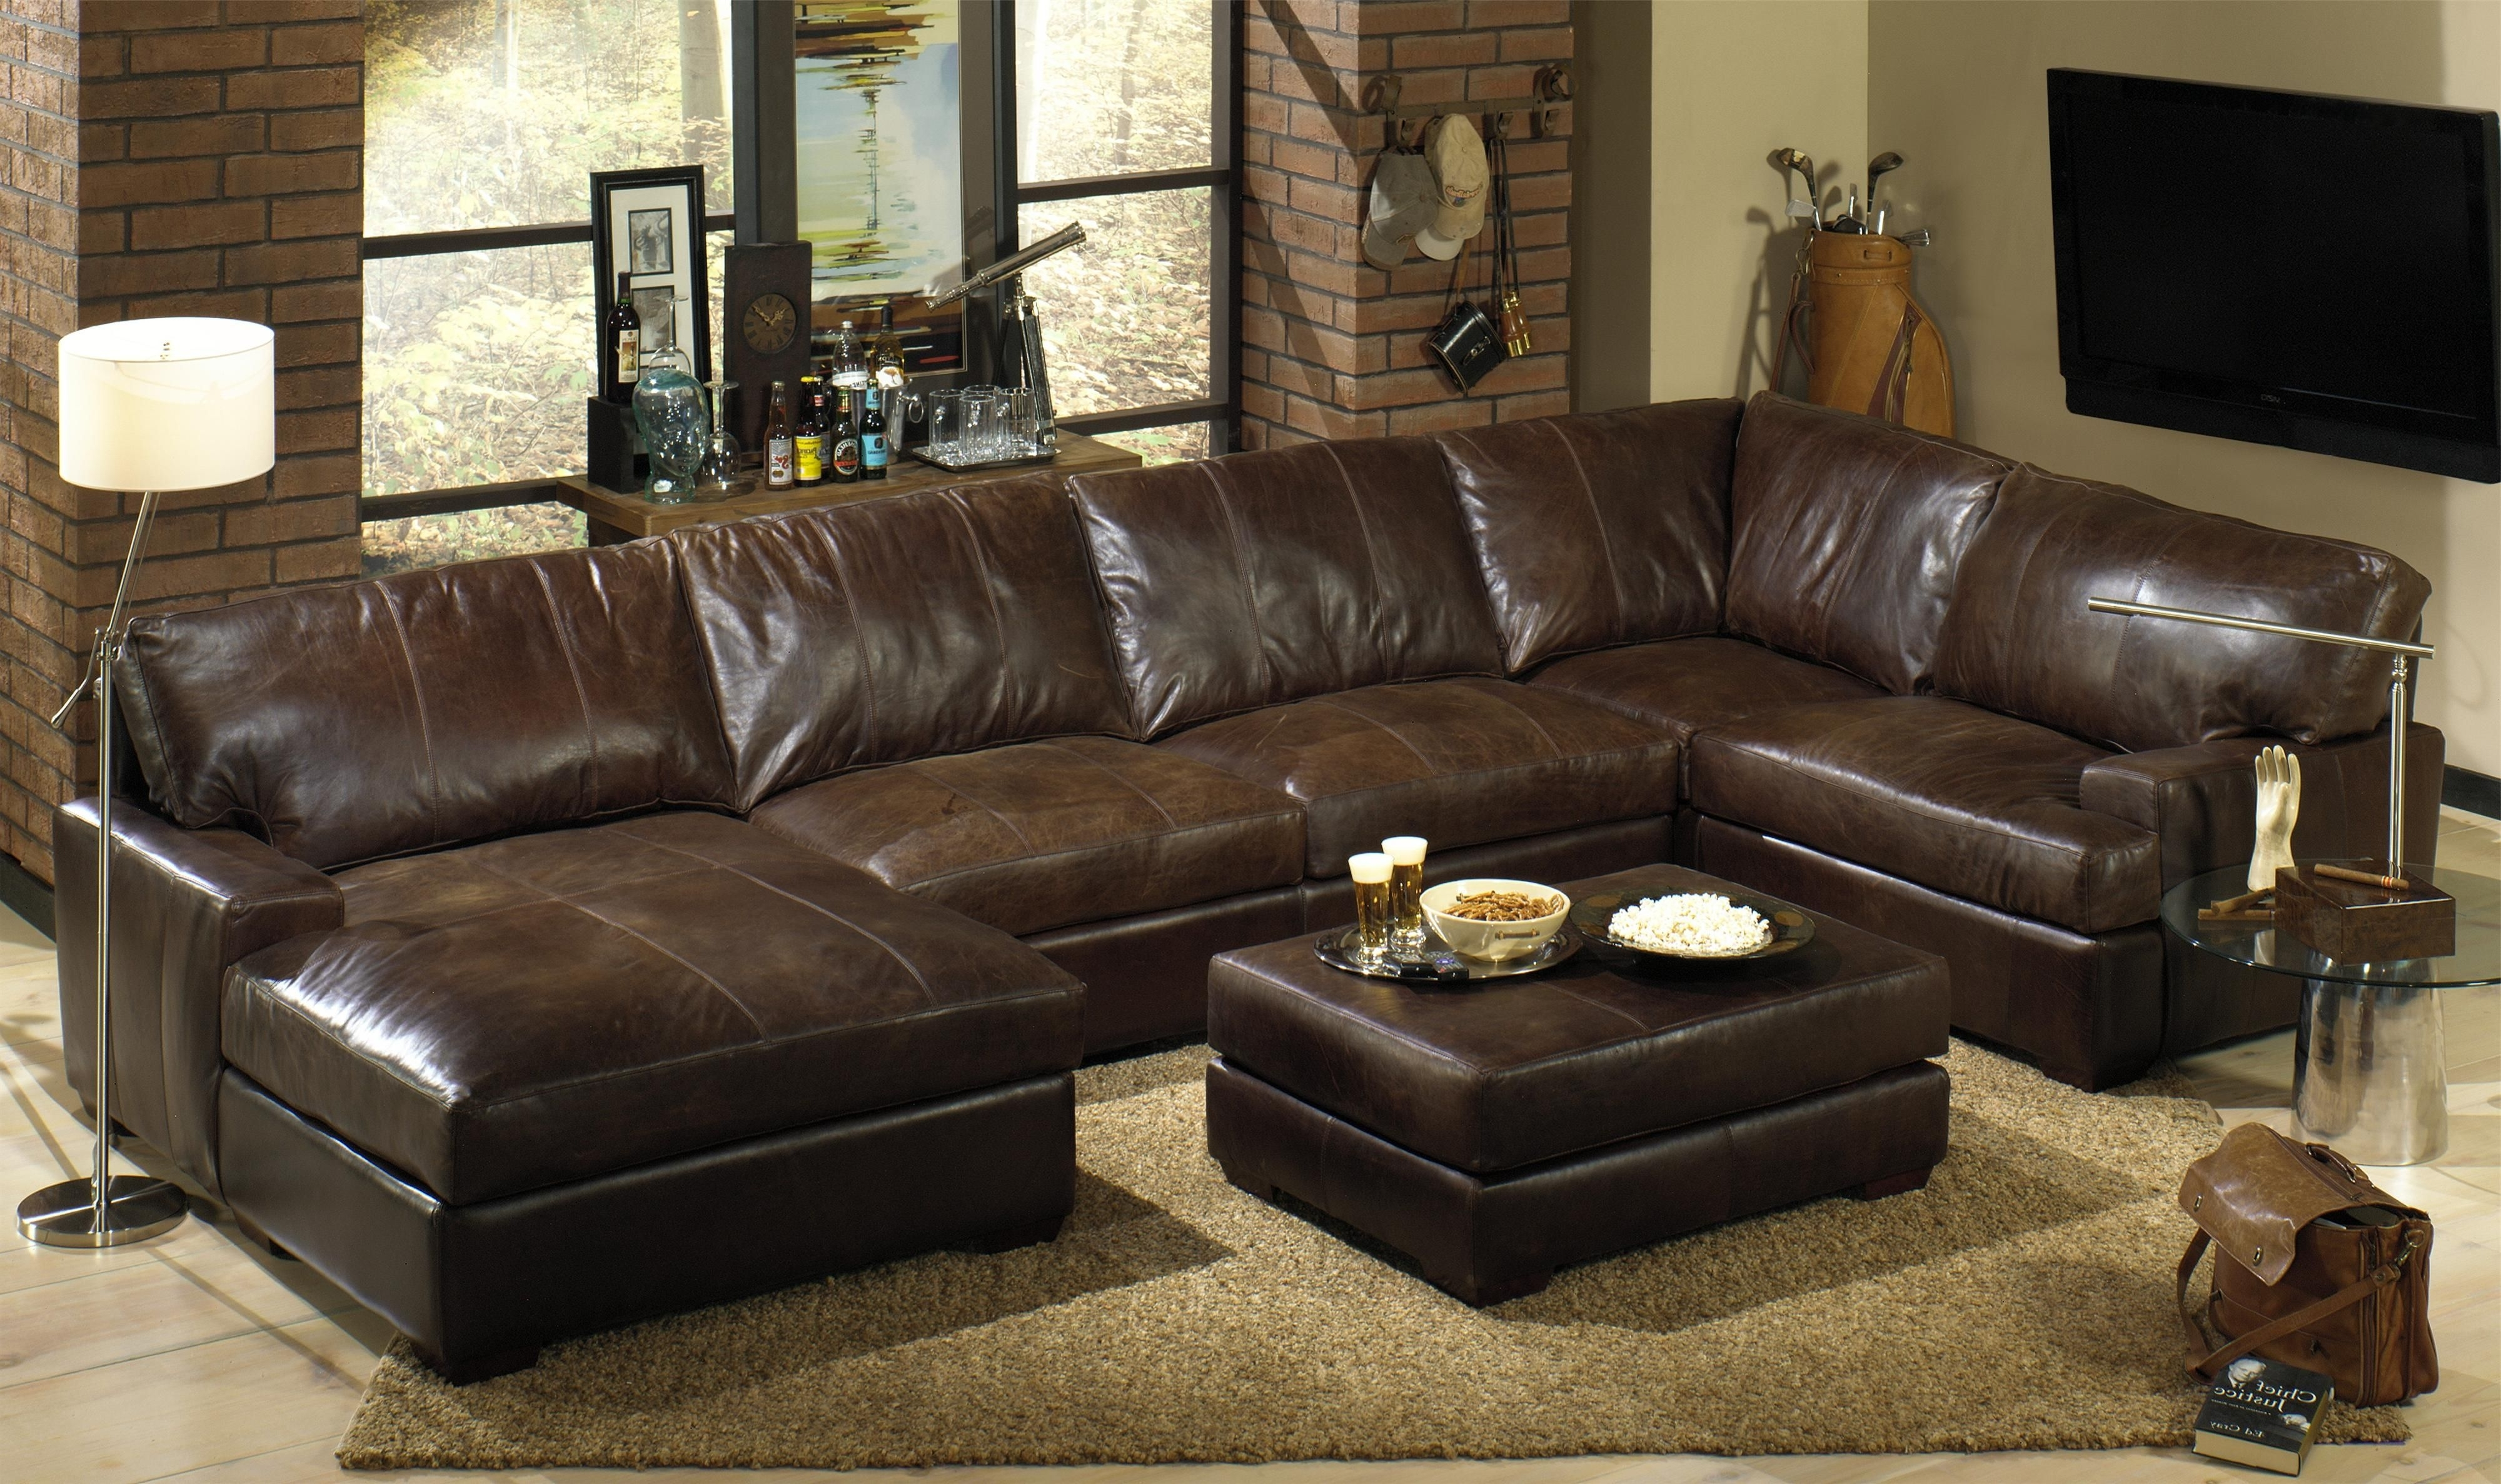 2018 Comfortable Sectional Couches For Versatile Home Furniture Ideas Inside Leather Sectionals With Ottoman (View 1 of 20)